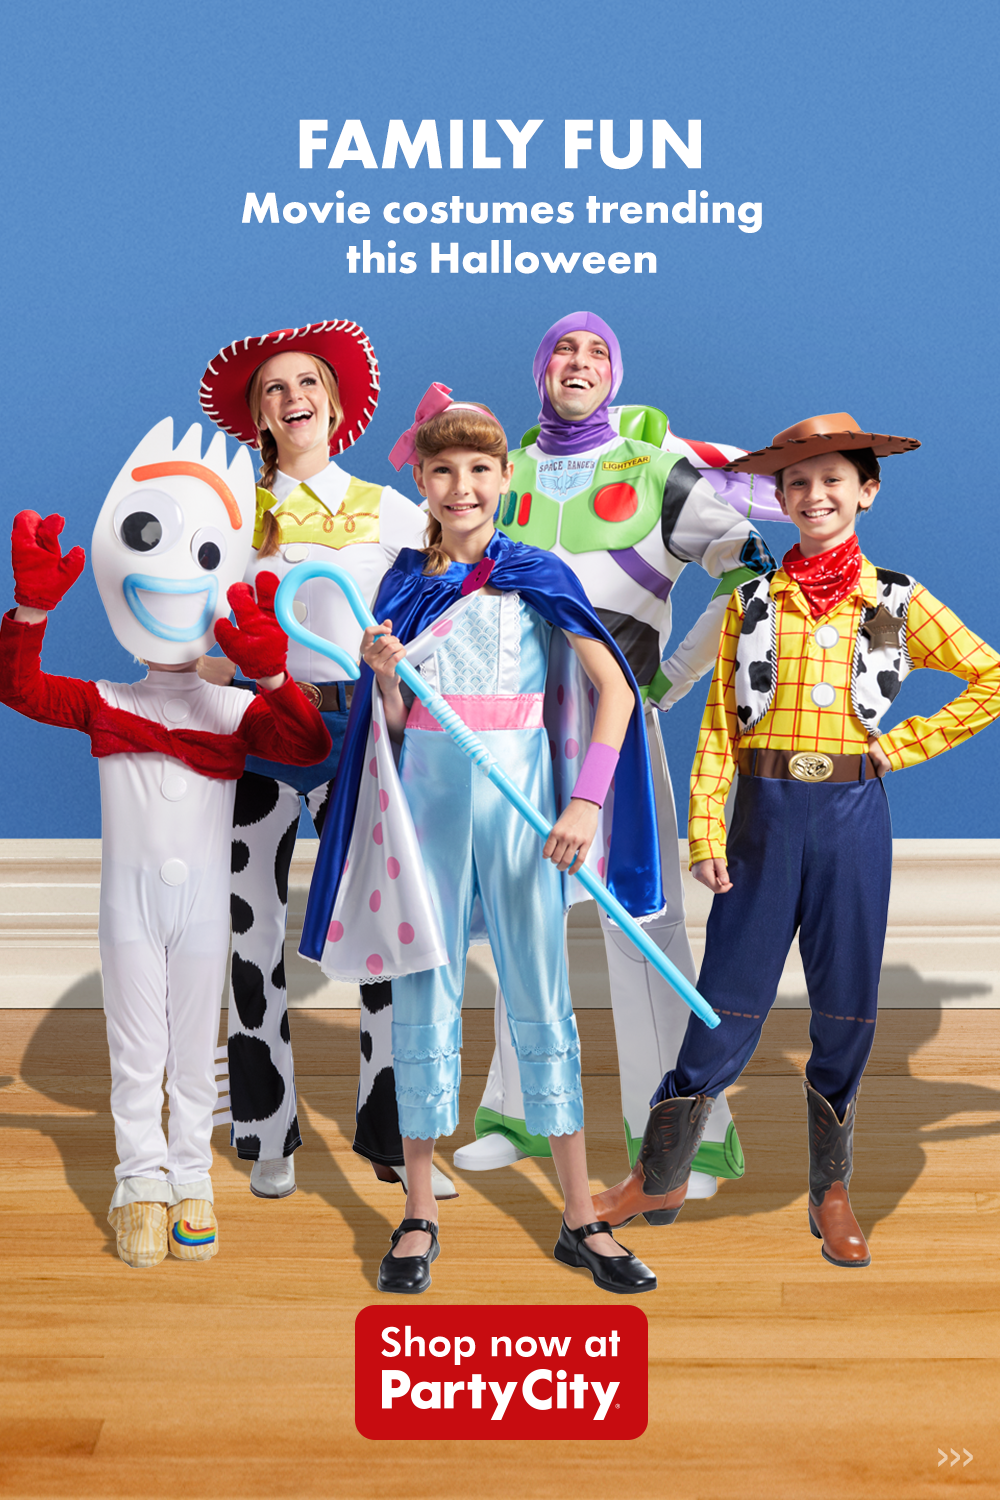 Transform Into Your Favorite Disney Character This Halloween With Party City Shop Toy Story Trends For The Wh Toy Story Halloween Toy Story Halloween Costume Cute Halloween Costumes